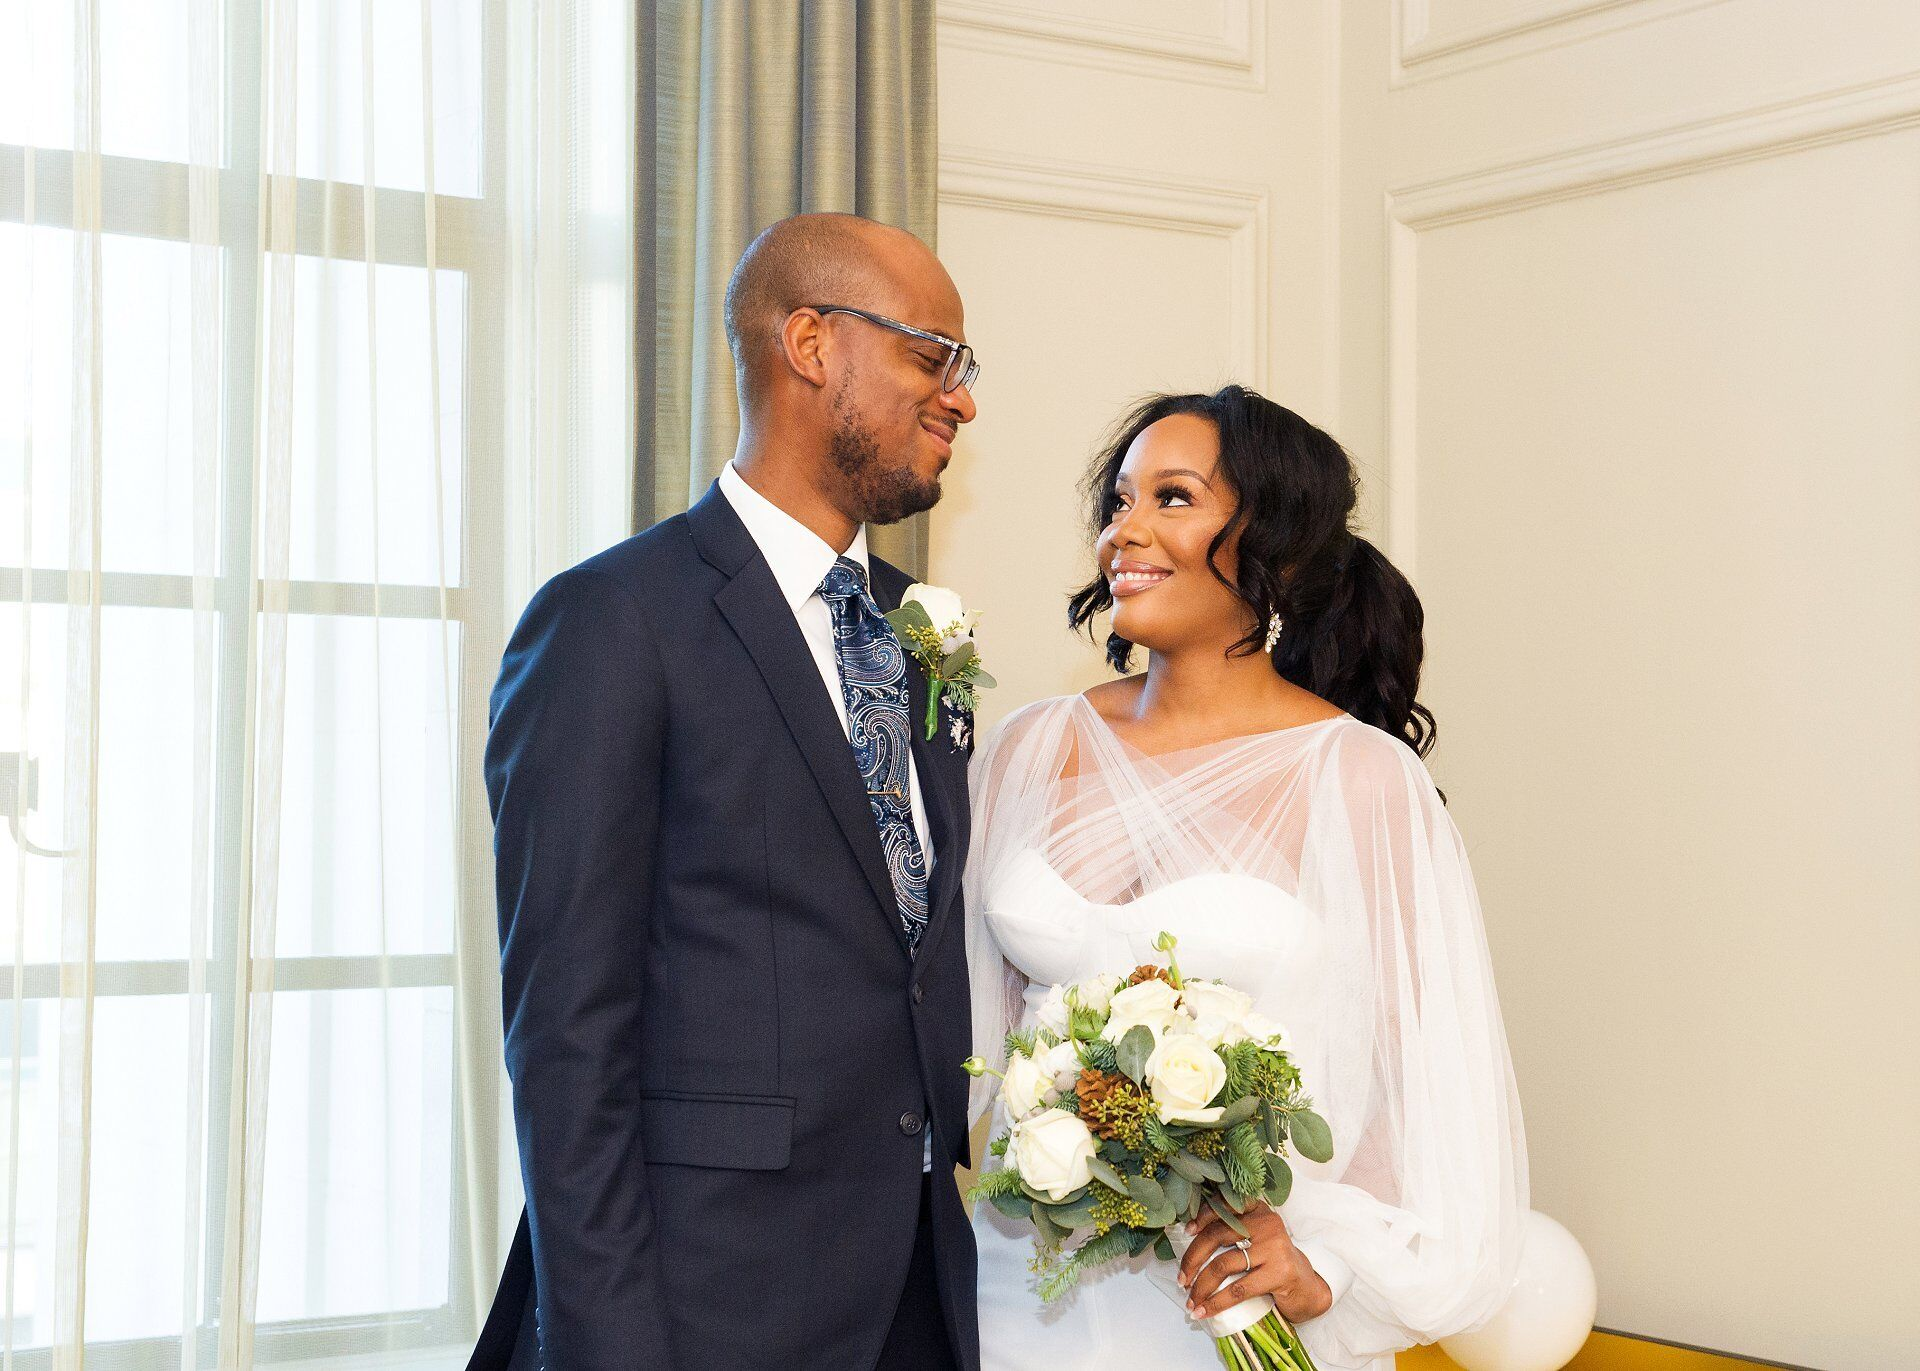 we did it - a couple smile at each other during their civil wedding at old marylebone town hall